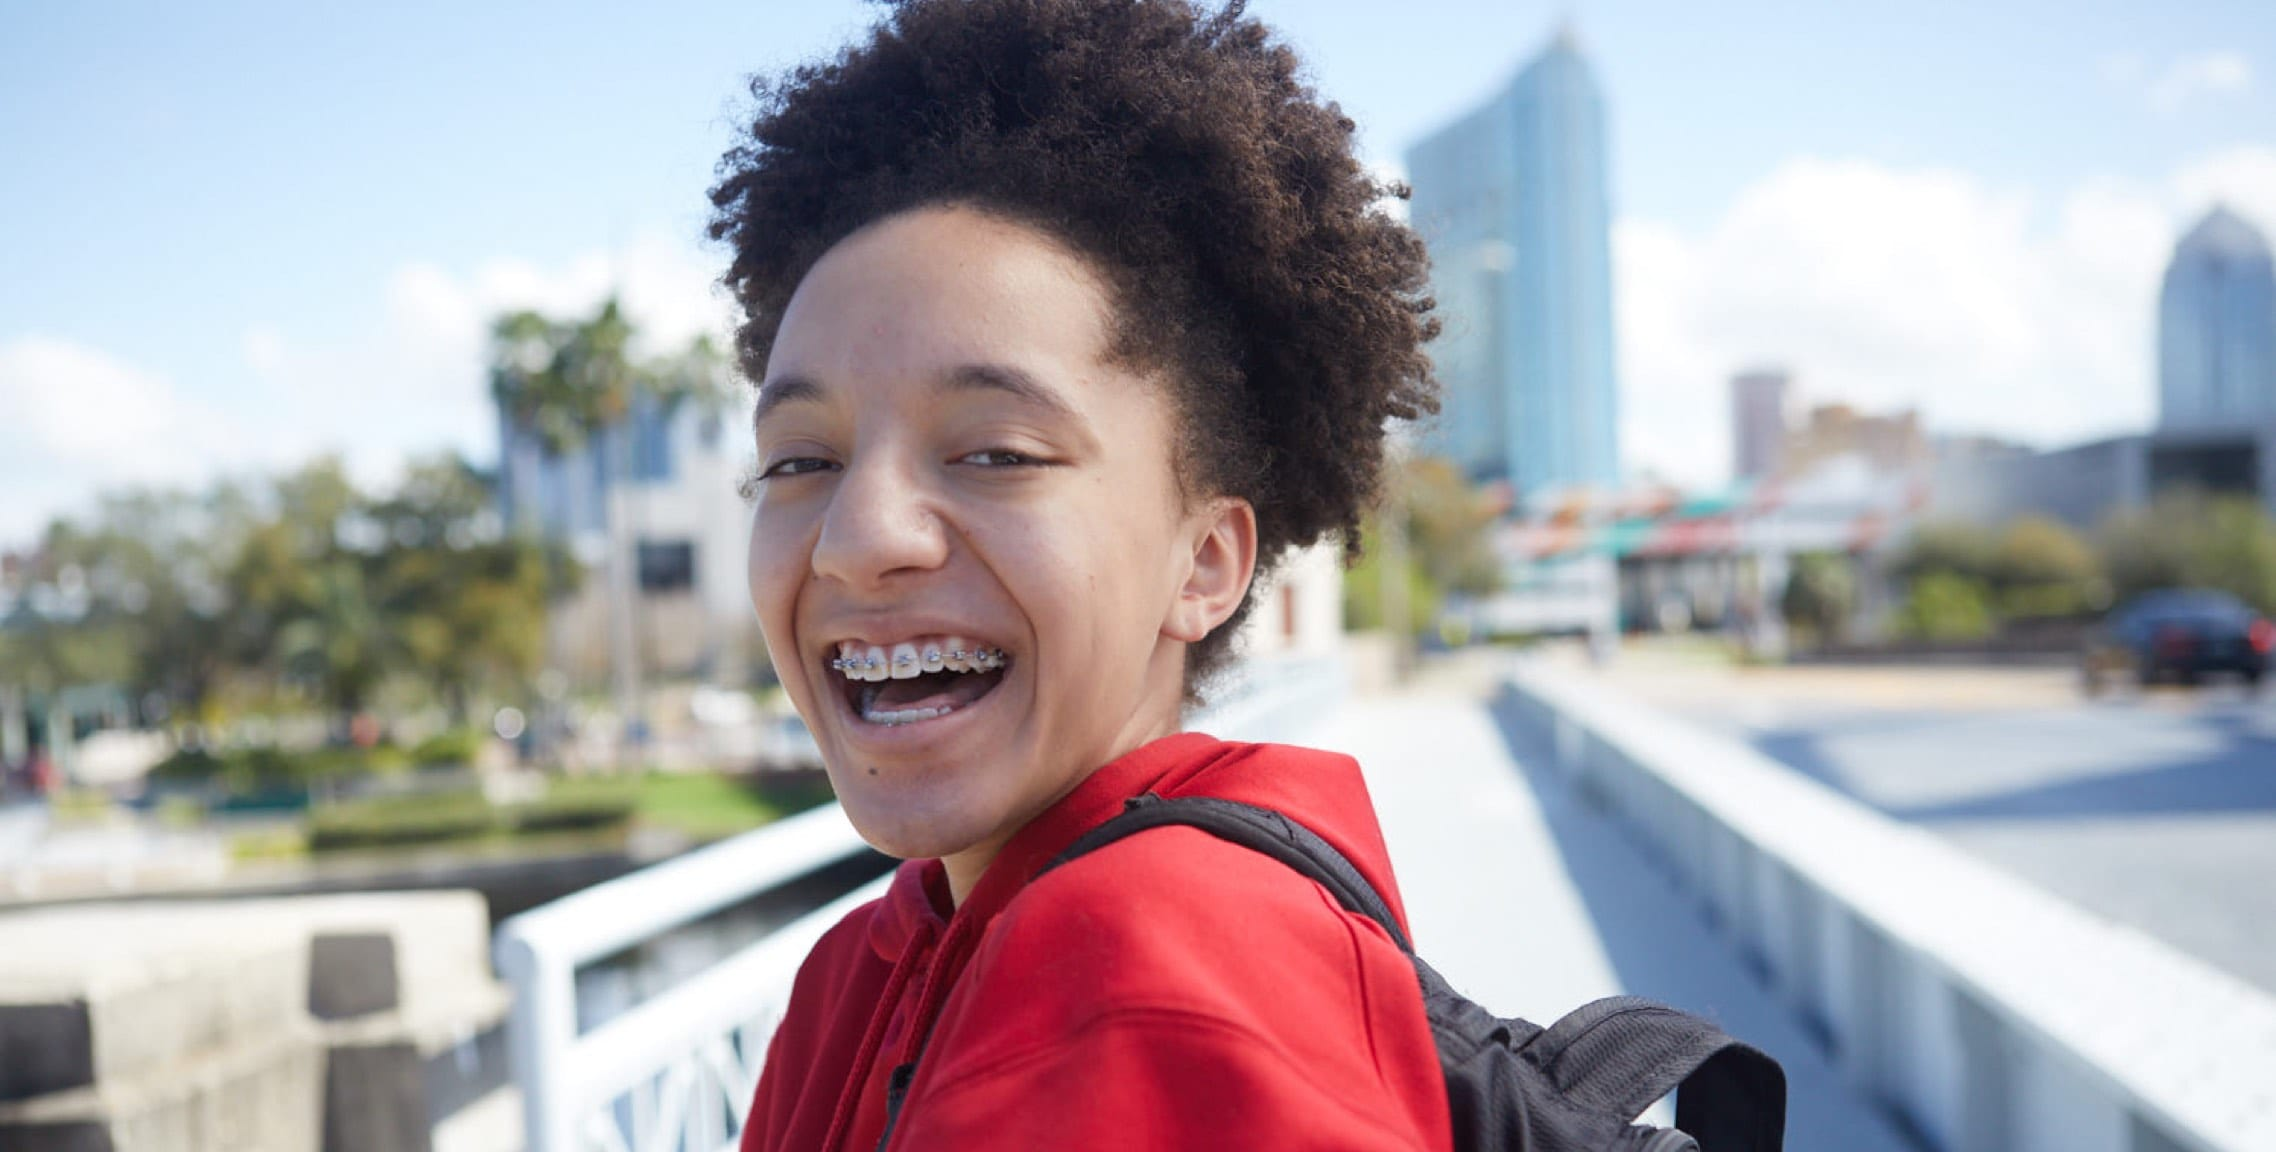 Student smiling with backpack and walking over bridge into downtown Tampa